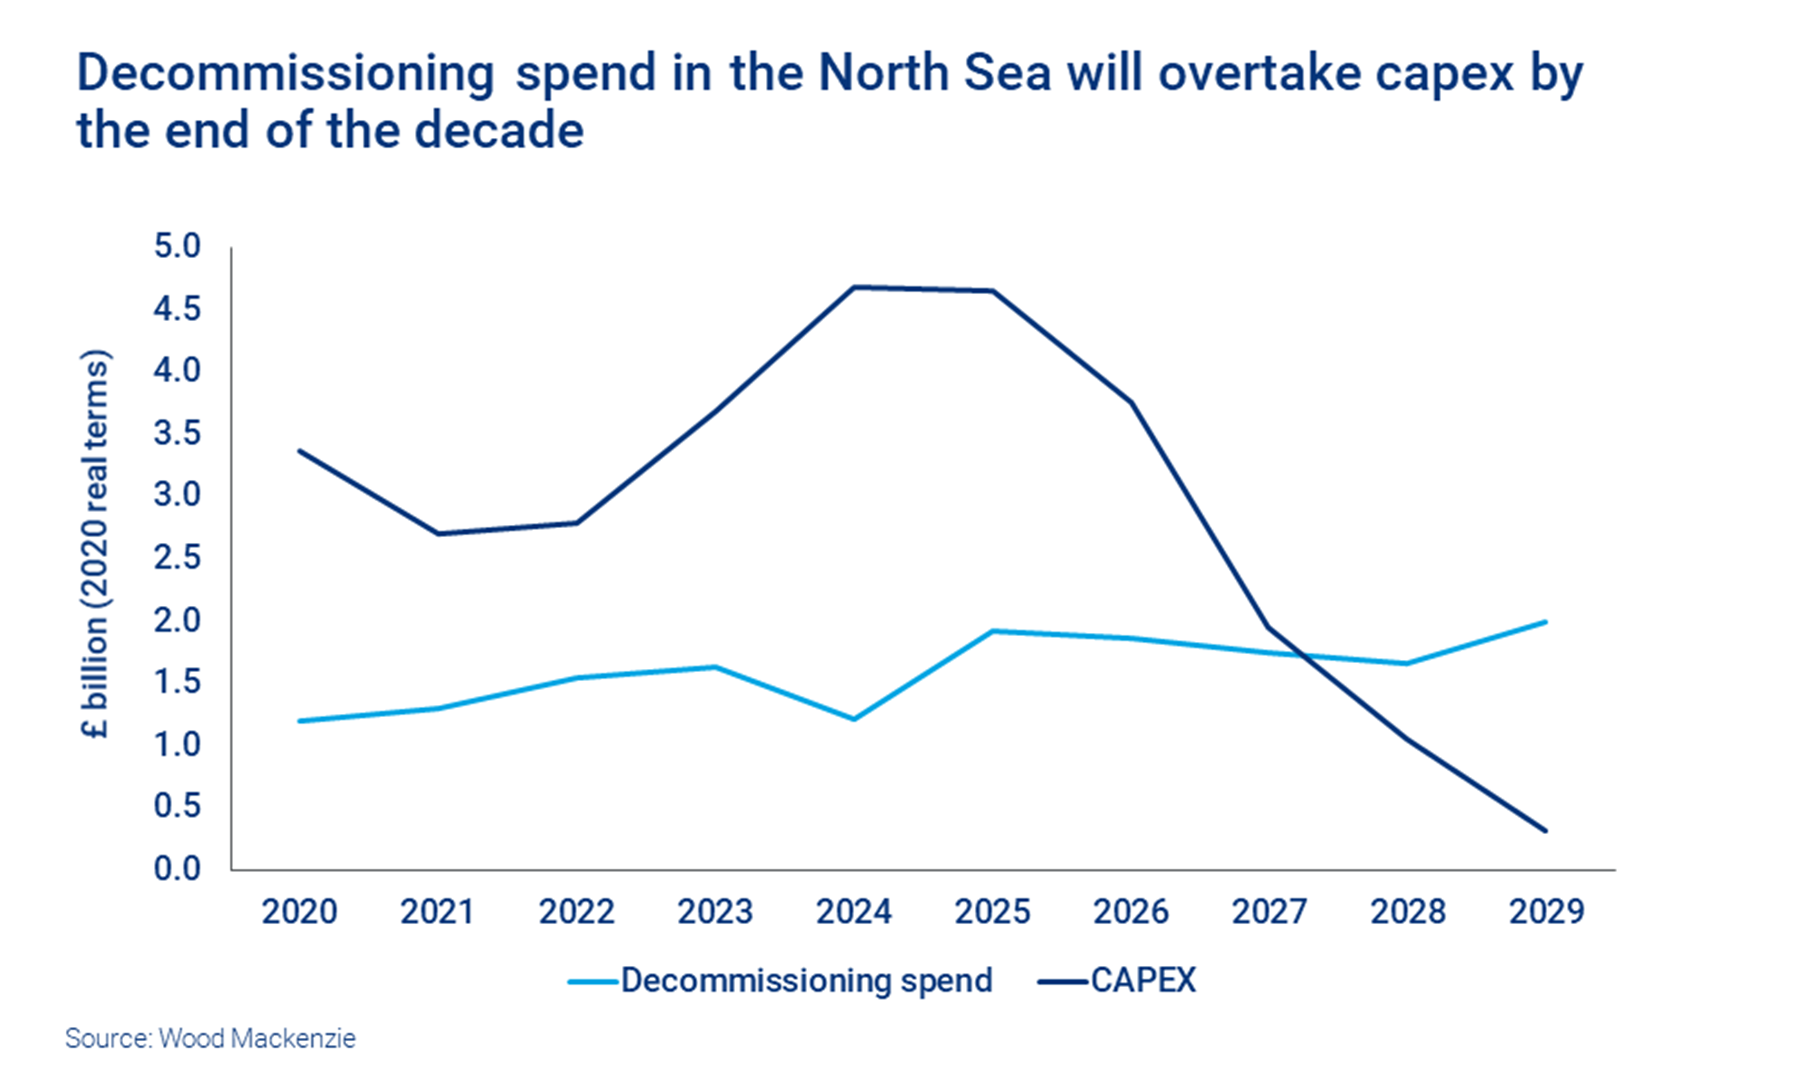 Chart shows Decommissioning spend in the North Sea will overtake capex by the end of the decade